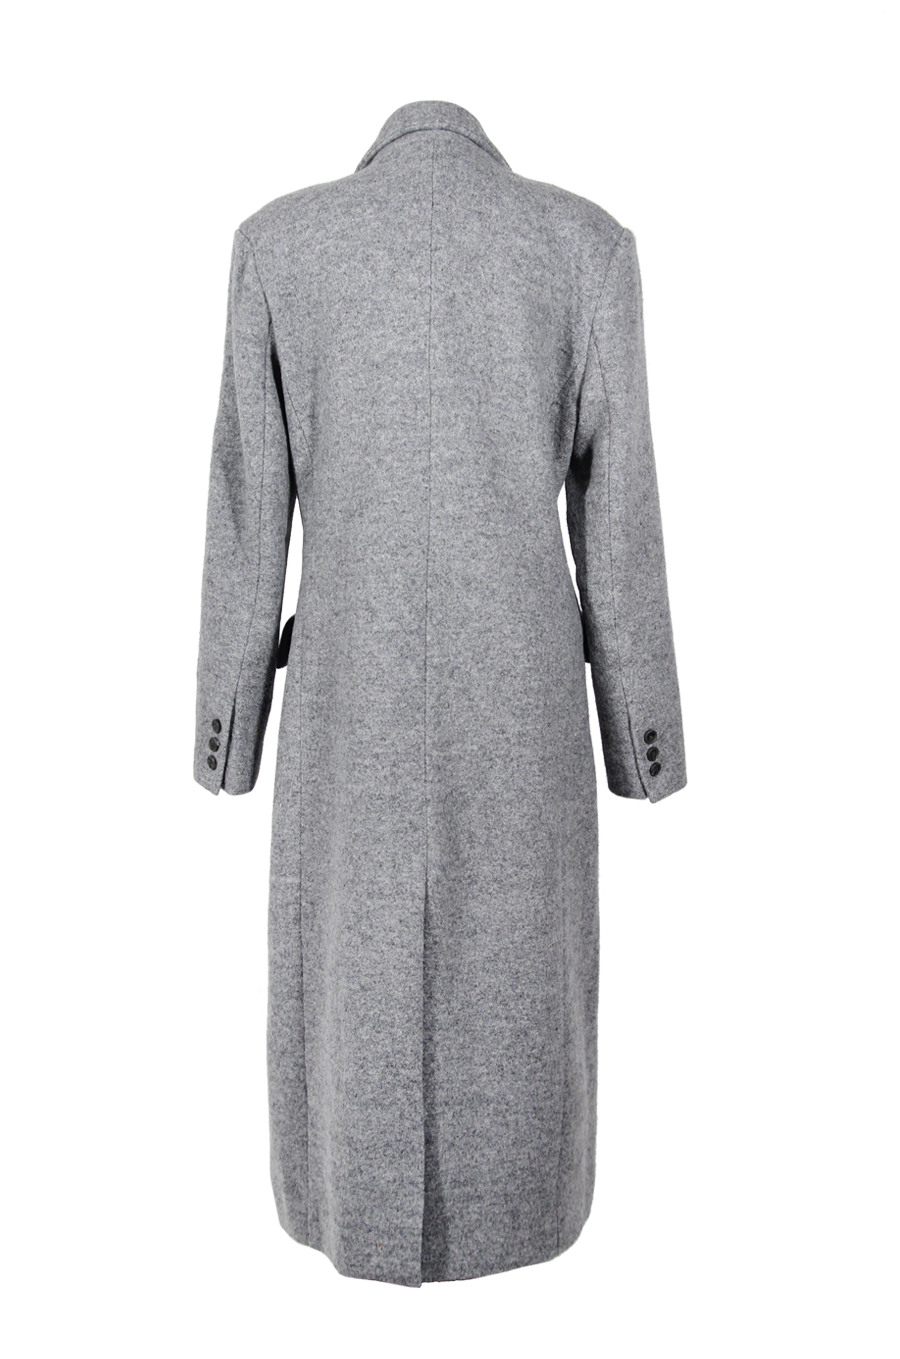 OLIVIA NZ Store online | Double Breasted Wool Coat / Grey